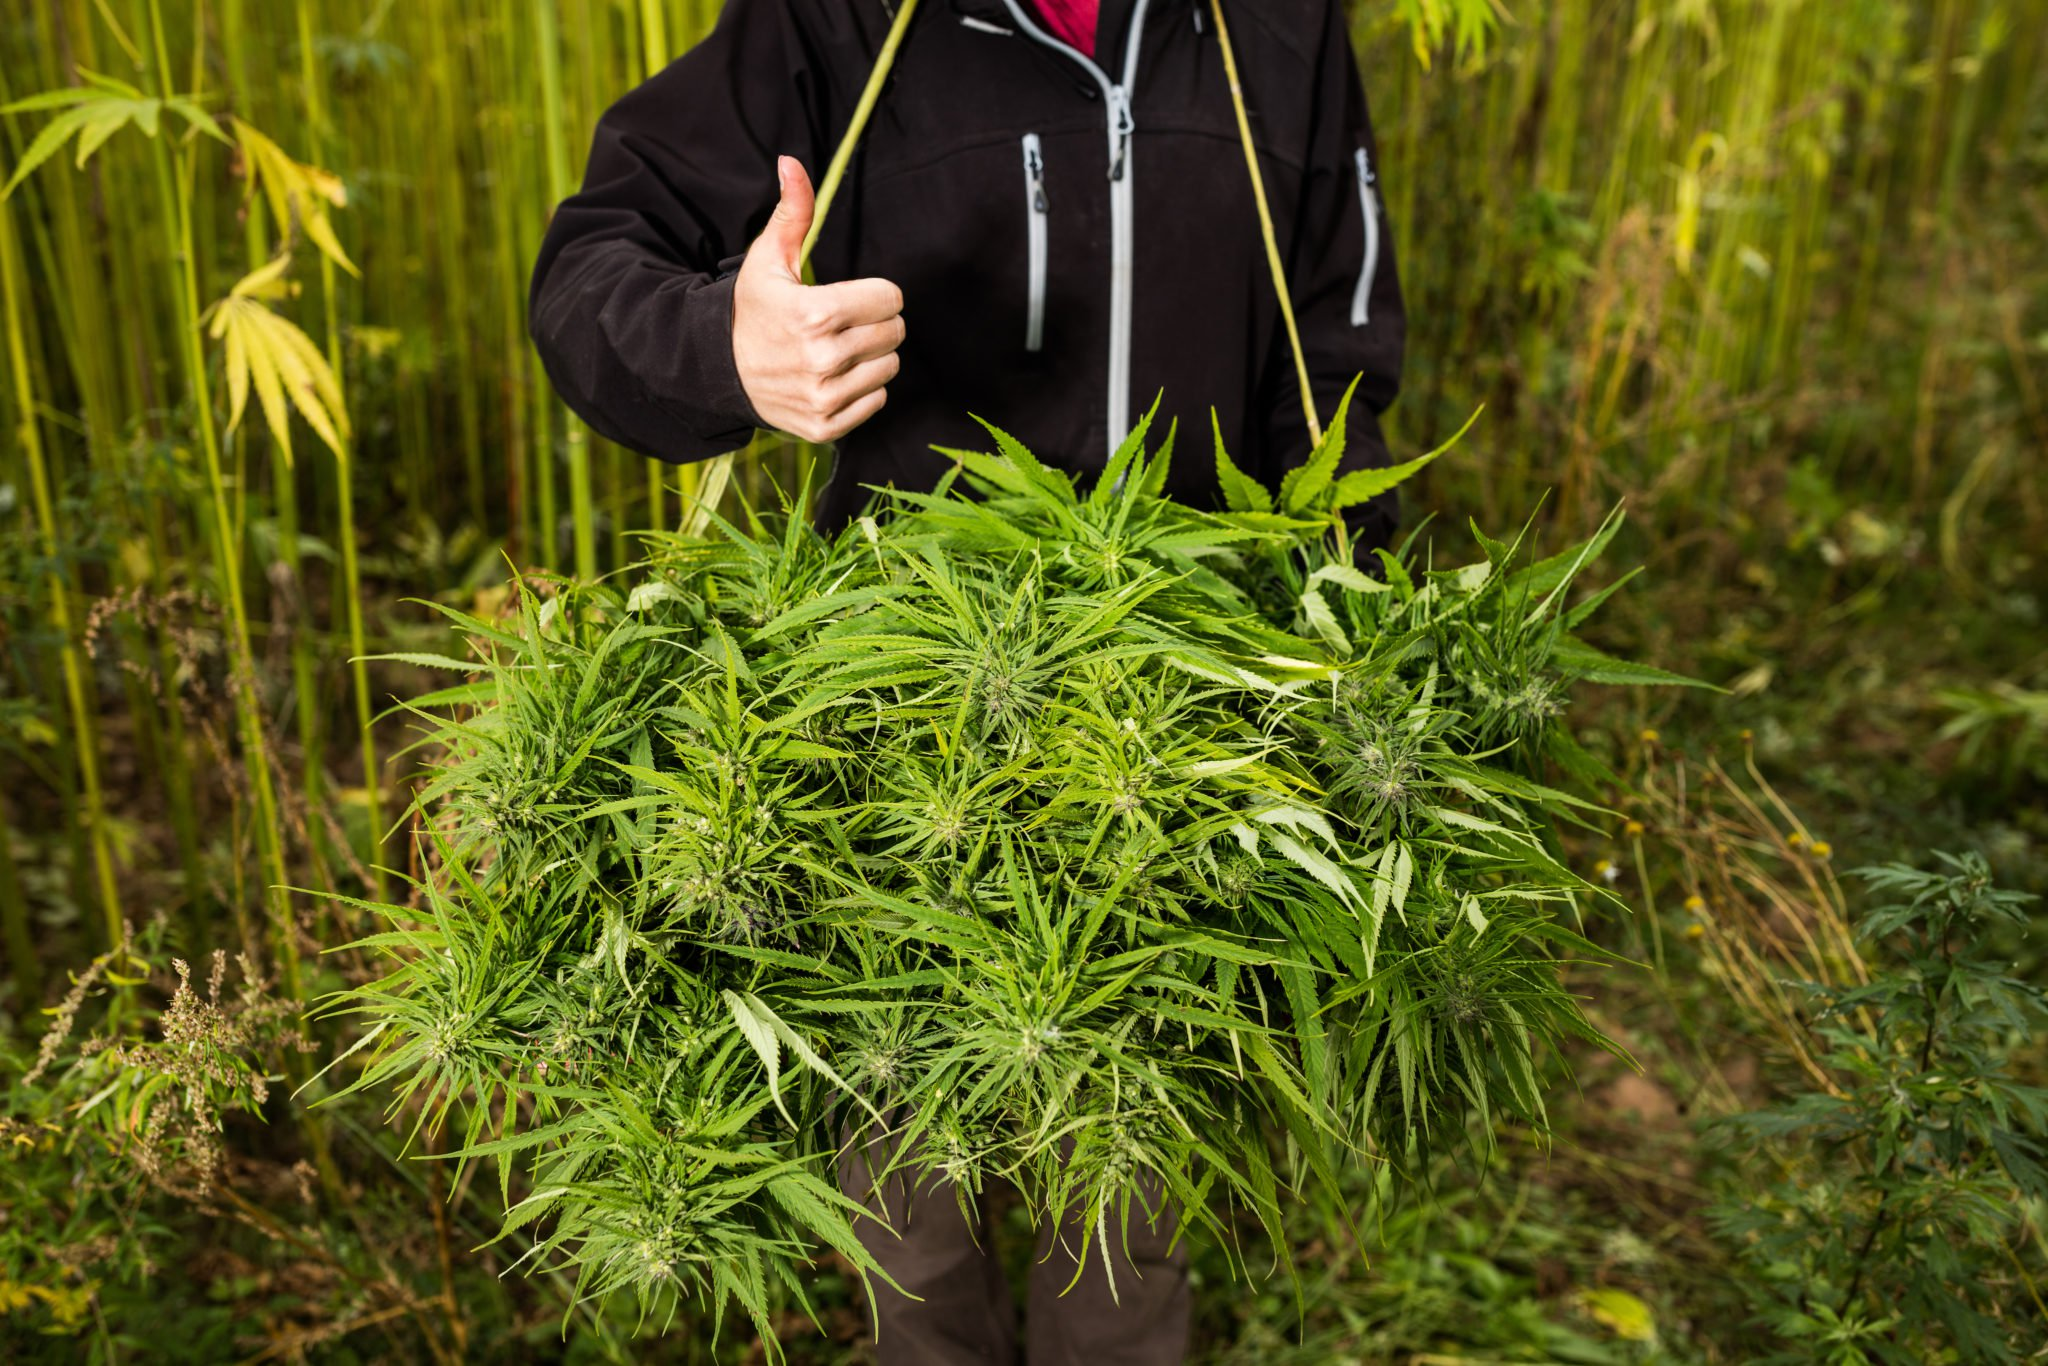 Seen from the shoulders down, a farmer in a black hoodie gives a thumbs up while posing with a basket of freshly harvested hemp. Although the Farm Bill fully legalized hemp, it's clear the stigma around the plant still remains.